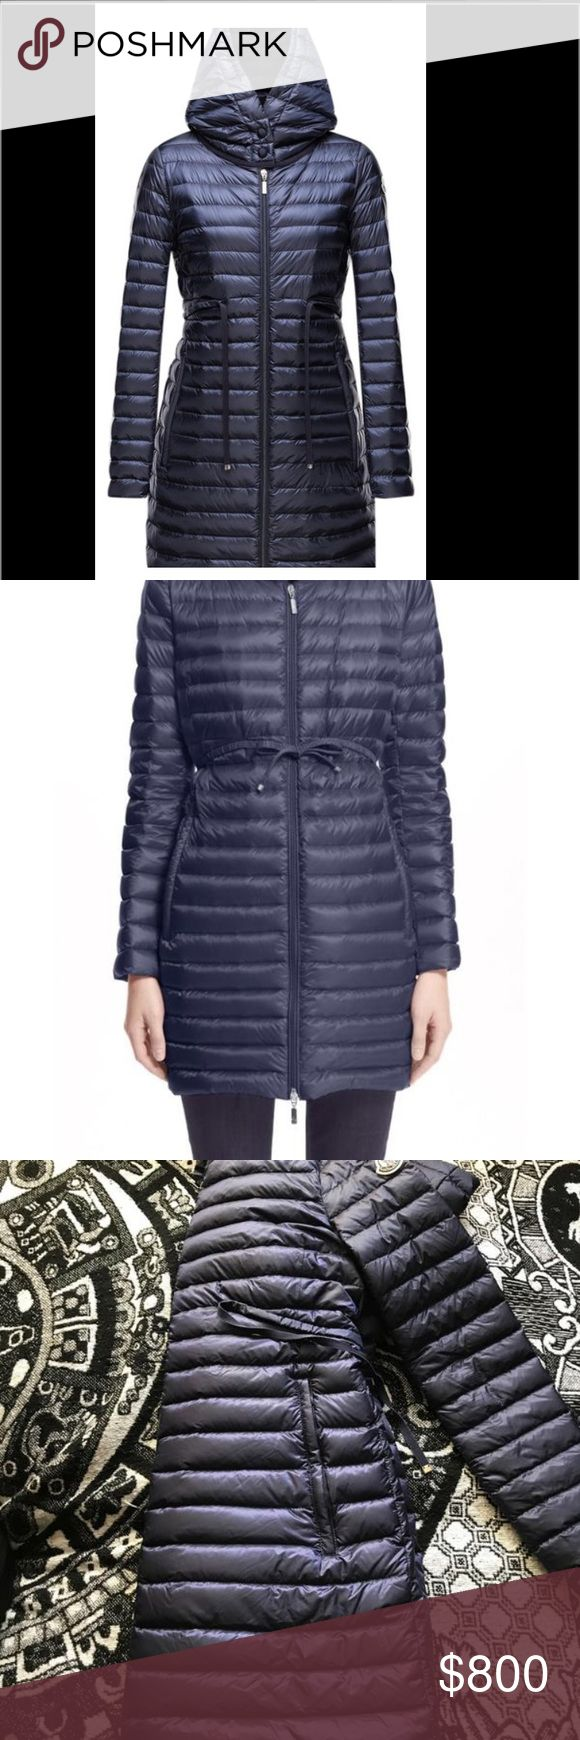 Moncler eBay currently ends Saturday! So don't miss out! Message me for a quick offer! :) WILL DO LESS ON TRADESY, MECARI, PayPal, or venmo!  Women's AUTHENTIC Moncler coat for sale! This coat is a size 3 Brand new without tags attached Well taken care of, extremely light and comfortable, perfect for spring, and winter!  Pictures show authenticity and all the necessary compartments for look up. Message me any information! Thank you! Moncler Jackets & Coats Puffers